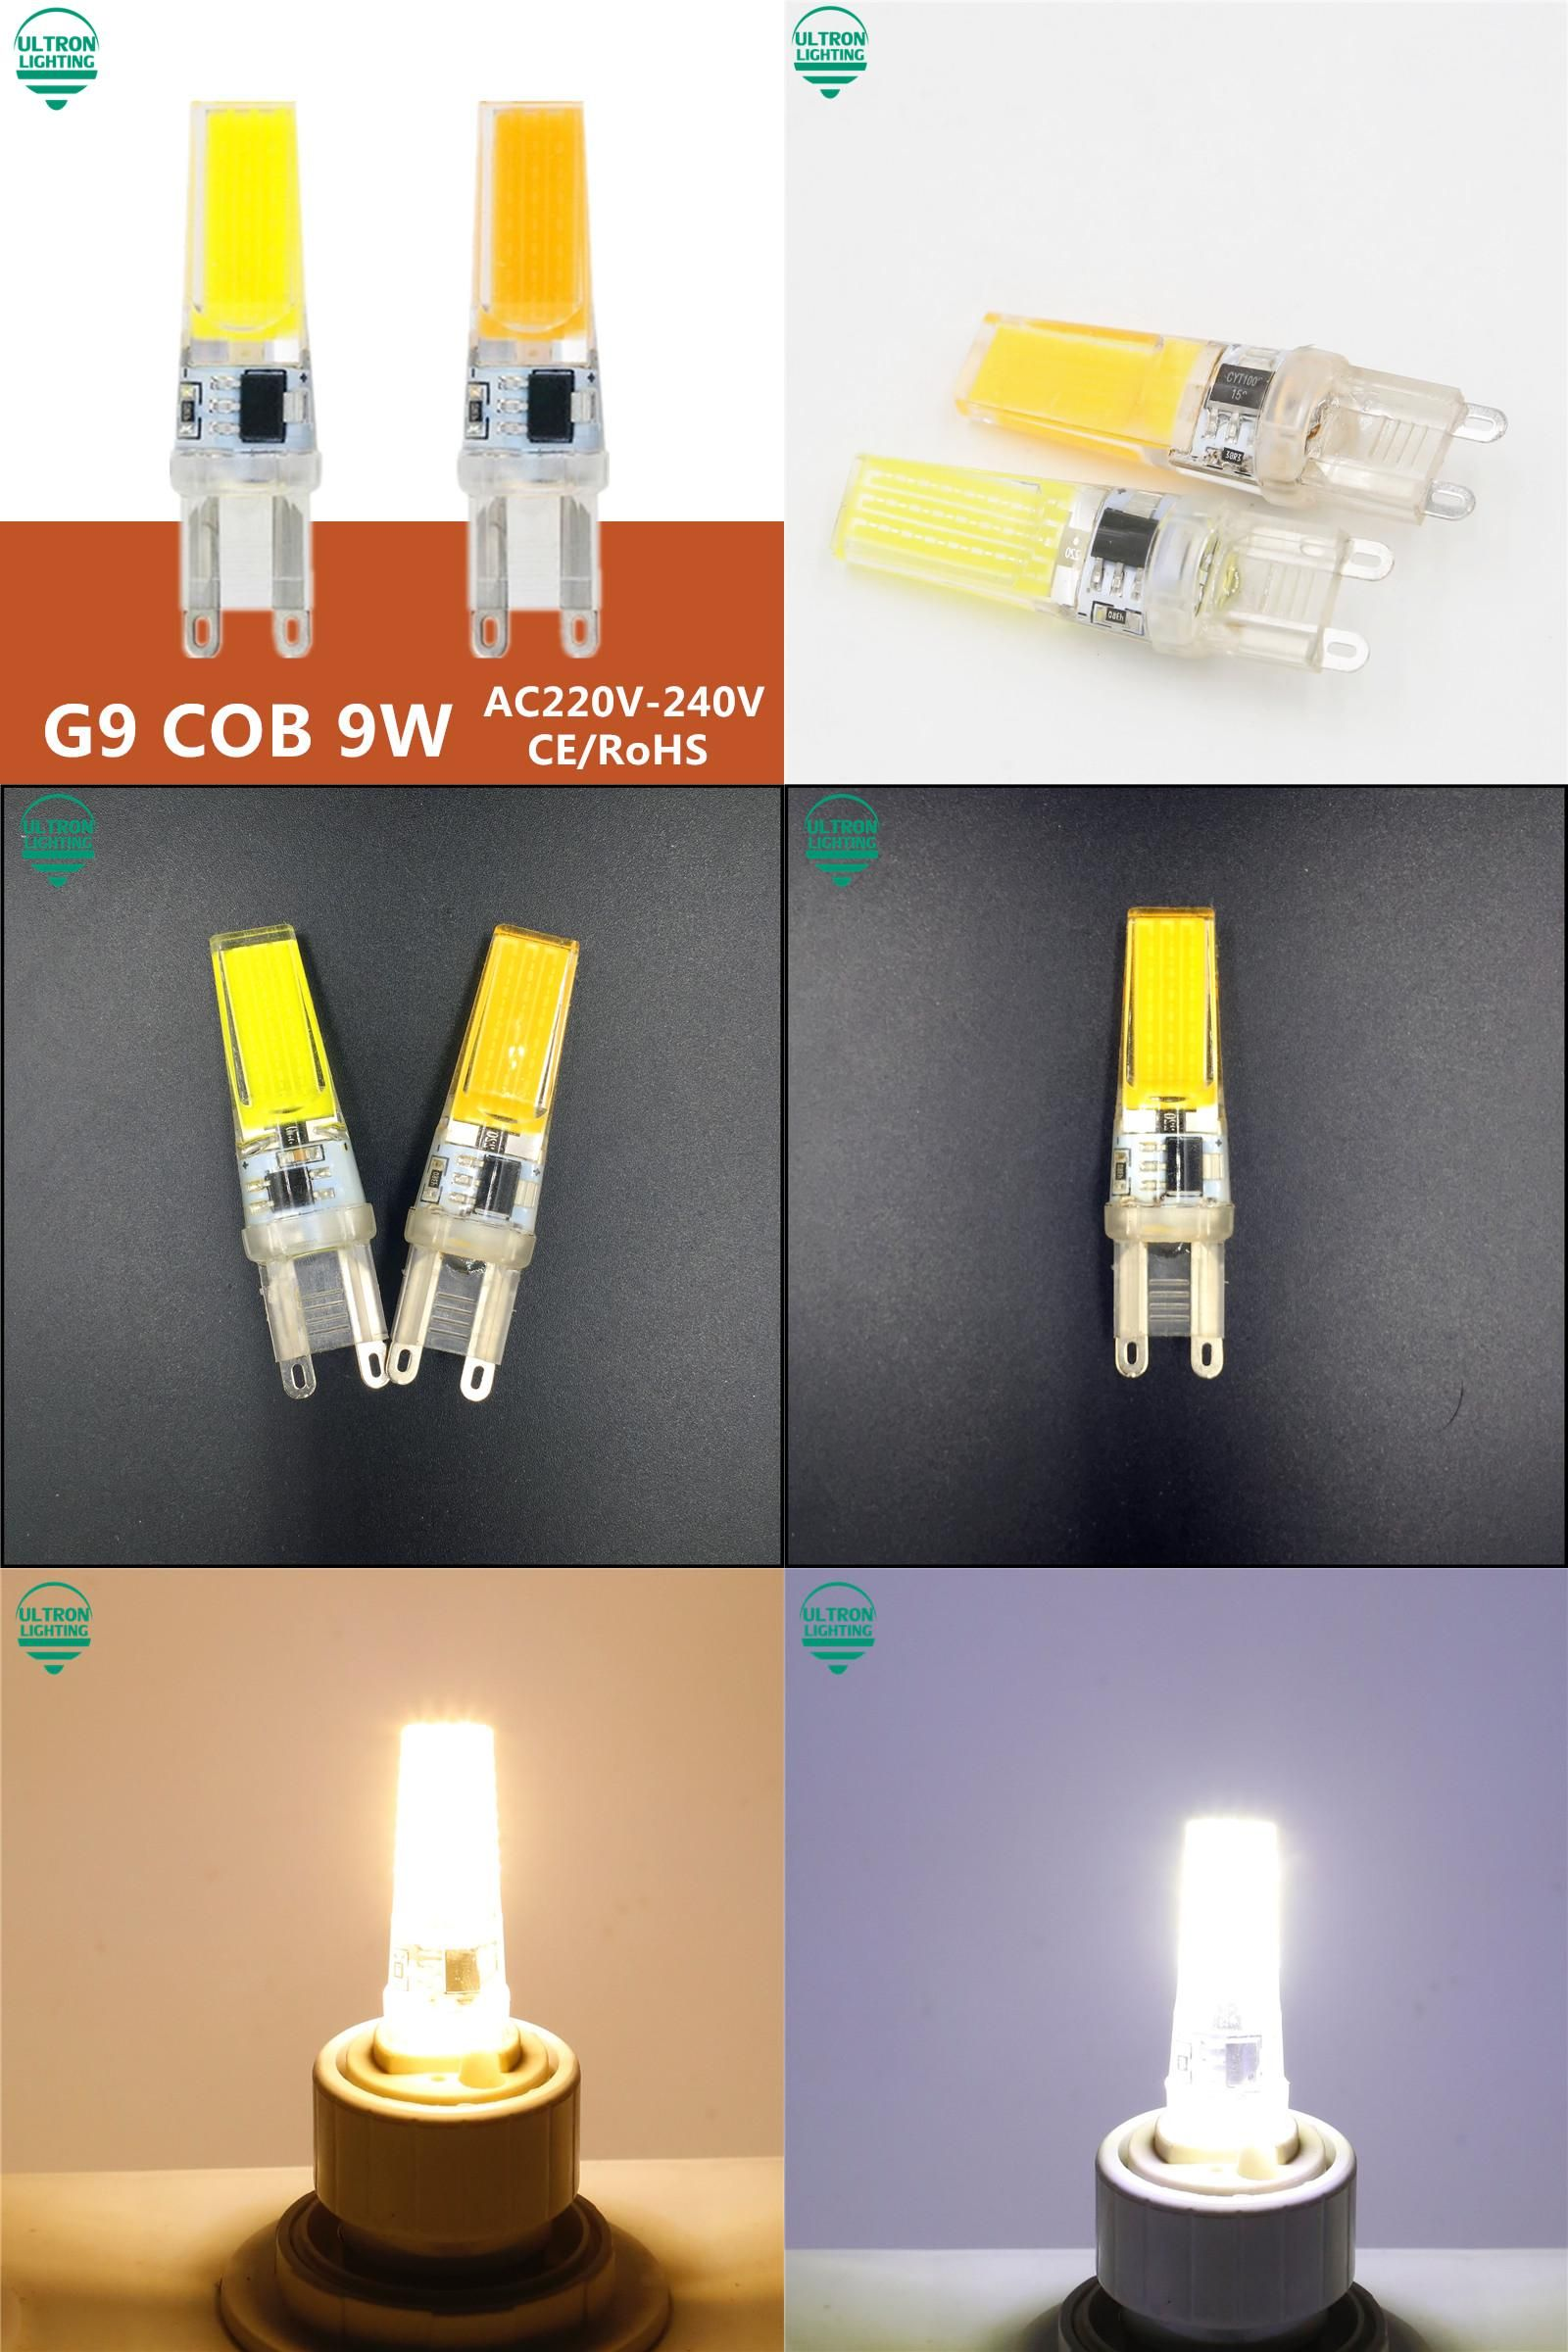 Visit To Buy G9 Led Lamp Bulb 220v 9w Cob Smd Led Lighting Lights Replace Halogen Spotlight Chandelier Light 230v 24 Chandelier Lighting Led Lights Lamp Bulb